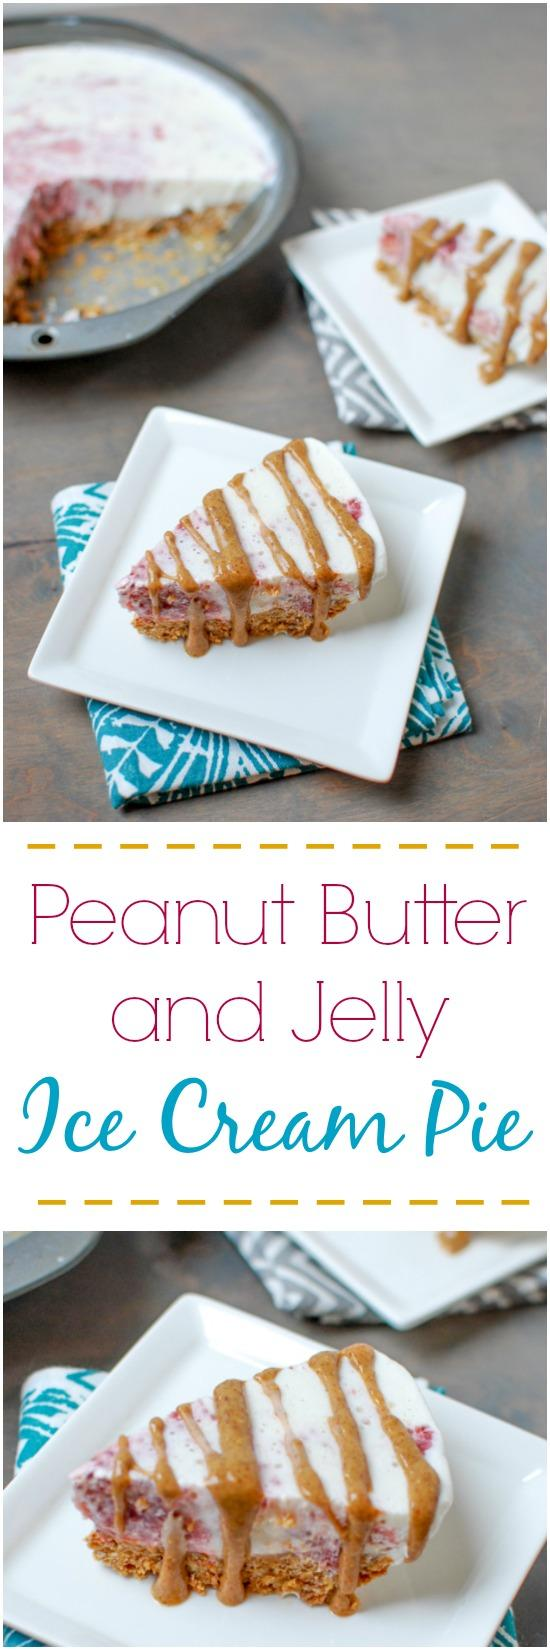 Love ice cream? Try this Peanut Butter and Jelly Ice Cream Pie! It's like a grown up version of your favorite childhood sandwich, for dessert!